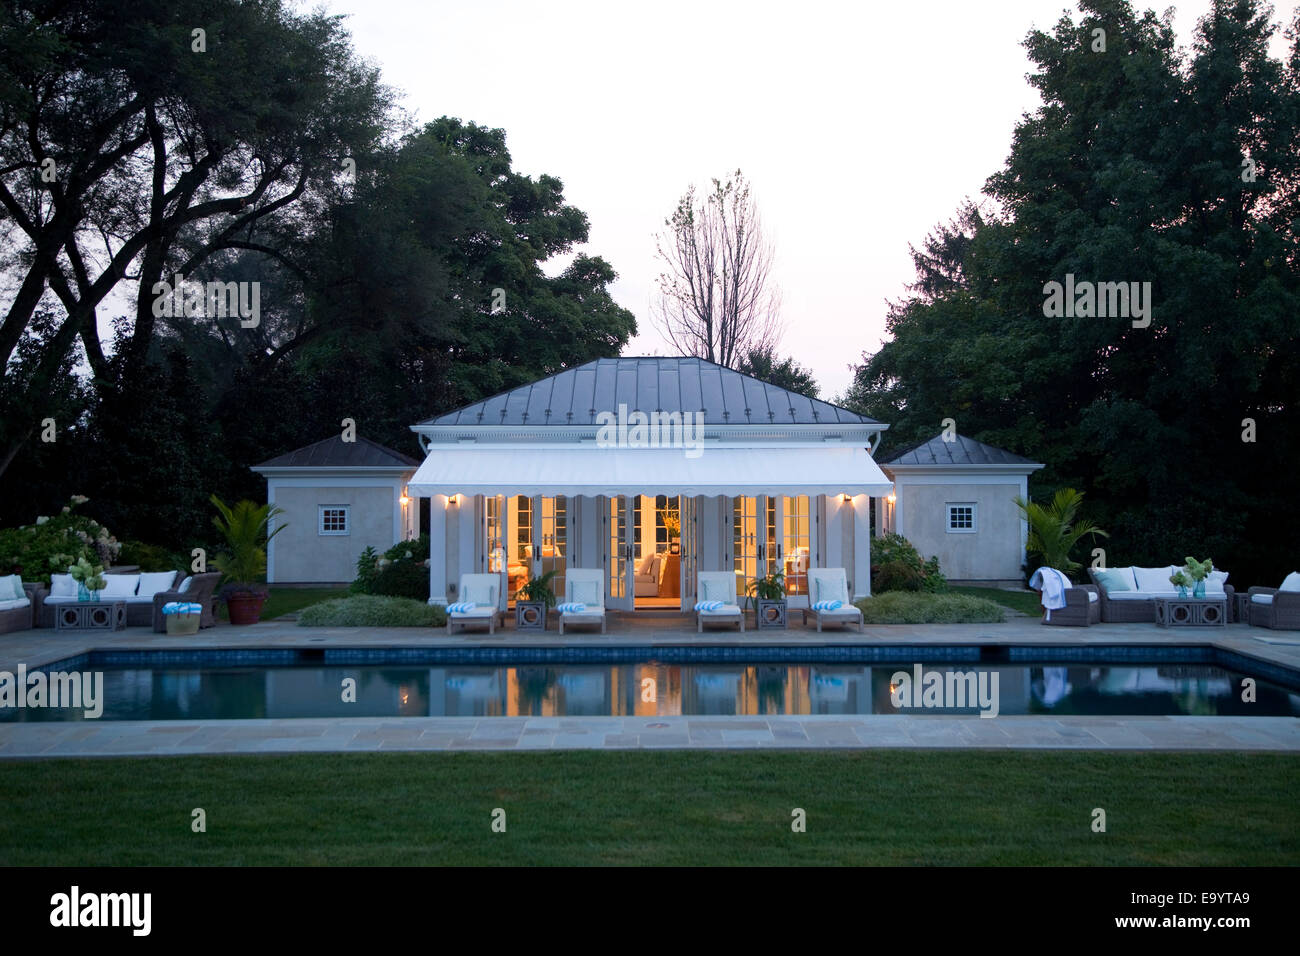 Swimming pool and pool house in early evening. - Stock Image